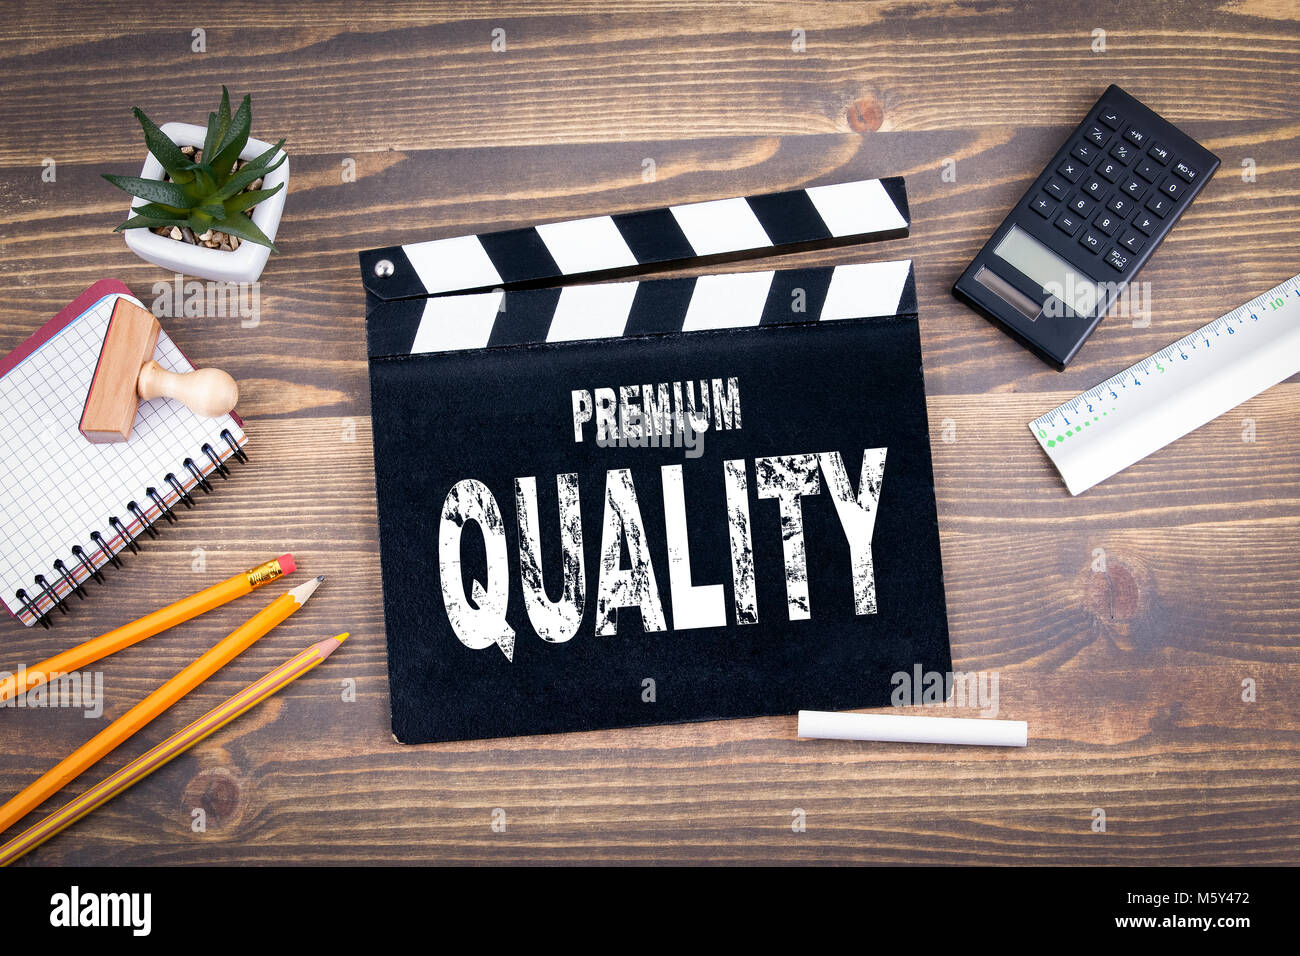 Premium Quality. Movie clapper on a wooden desk - Stock Image